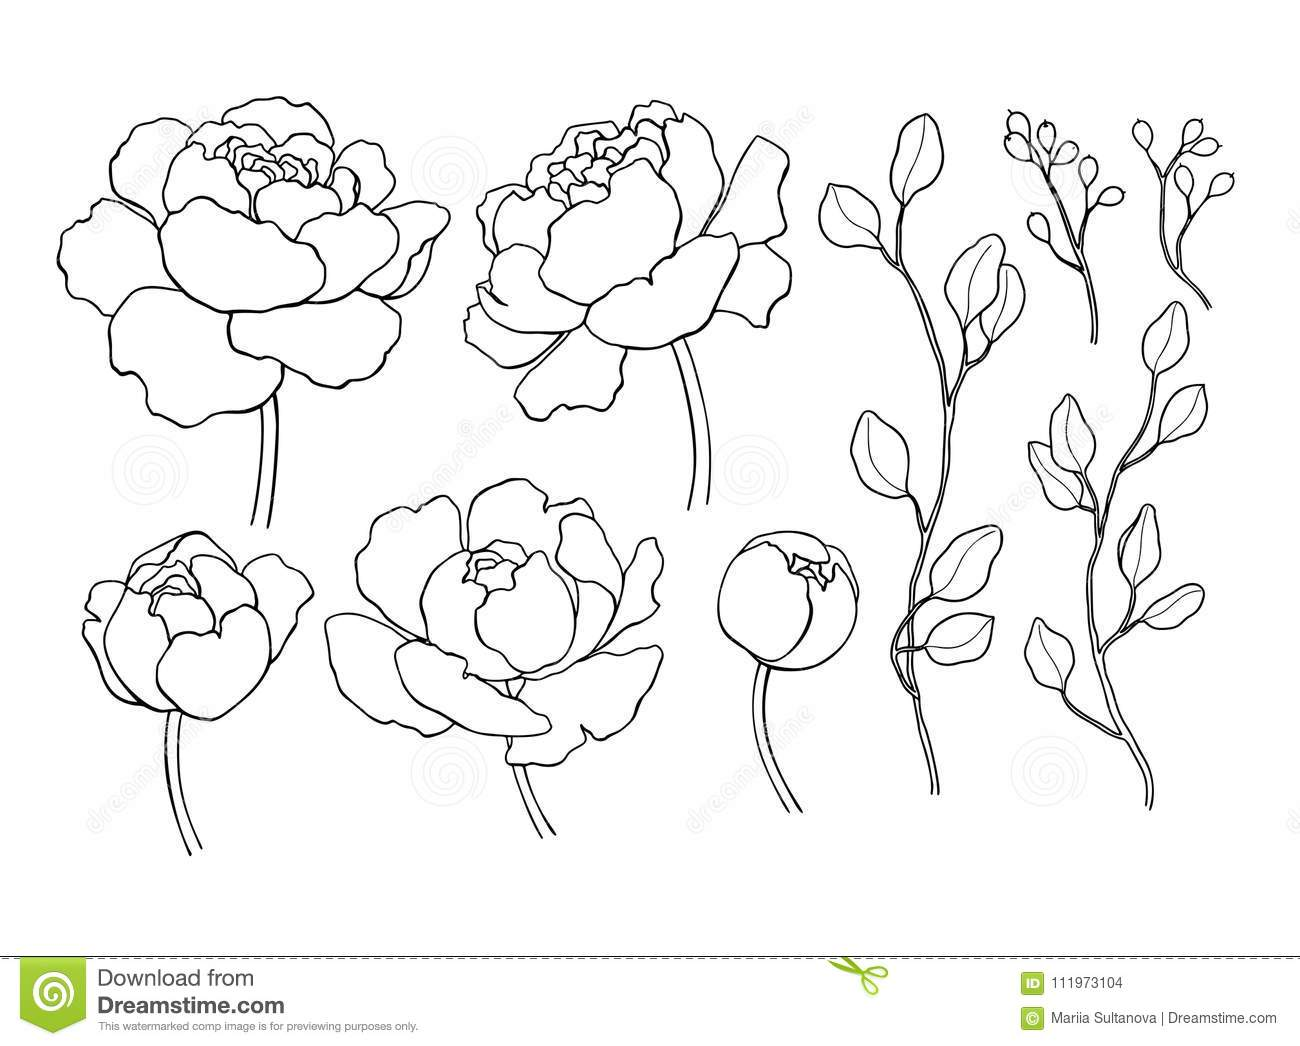 Flower Head Line Drawing : Peony flower and leaves line drawing vector hand drawn